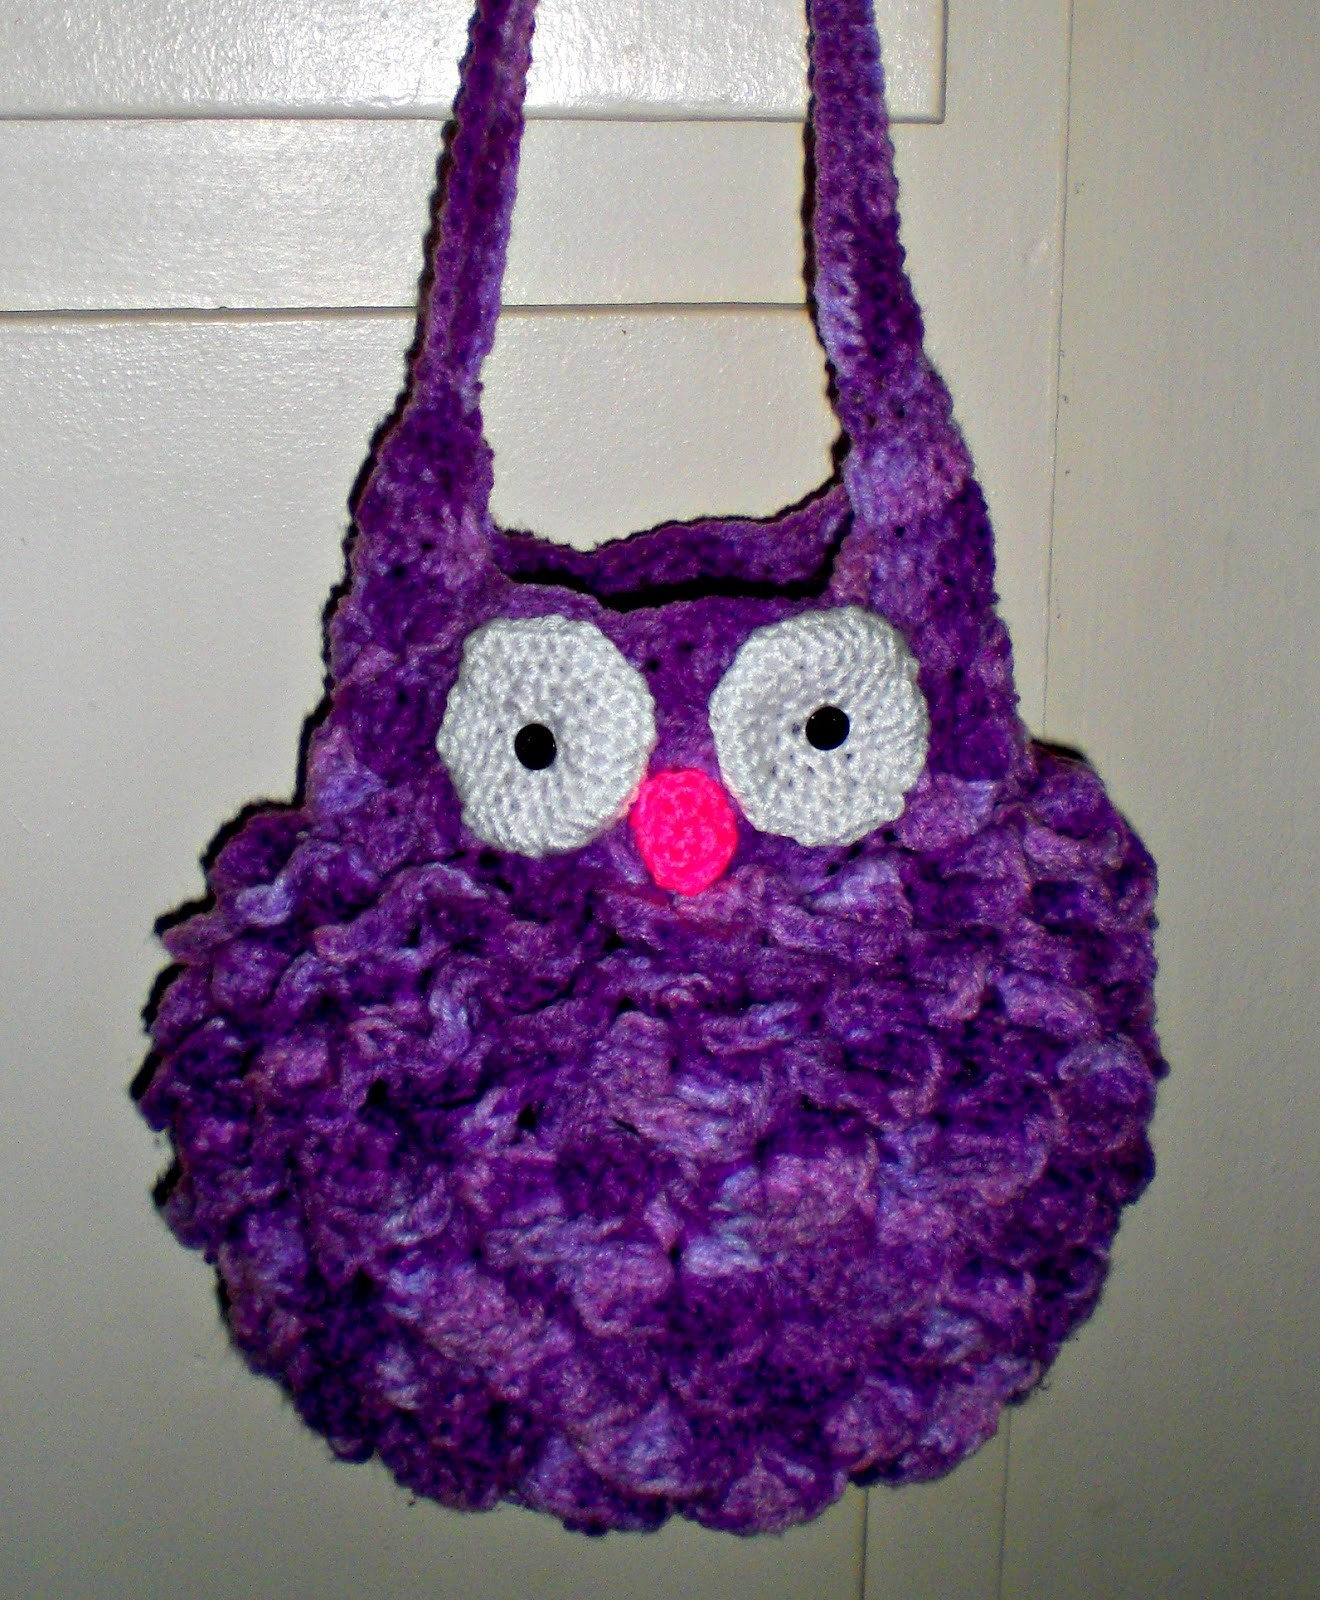 Free Crochet Pattern Owl Tote Bag : A Little Loopy, But Im Hooked: Fat Owl Bag